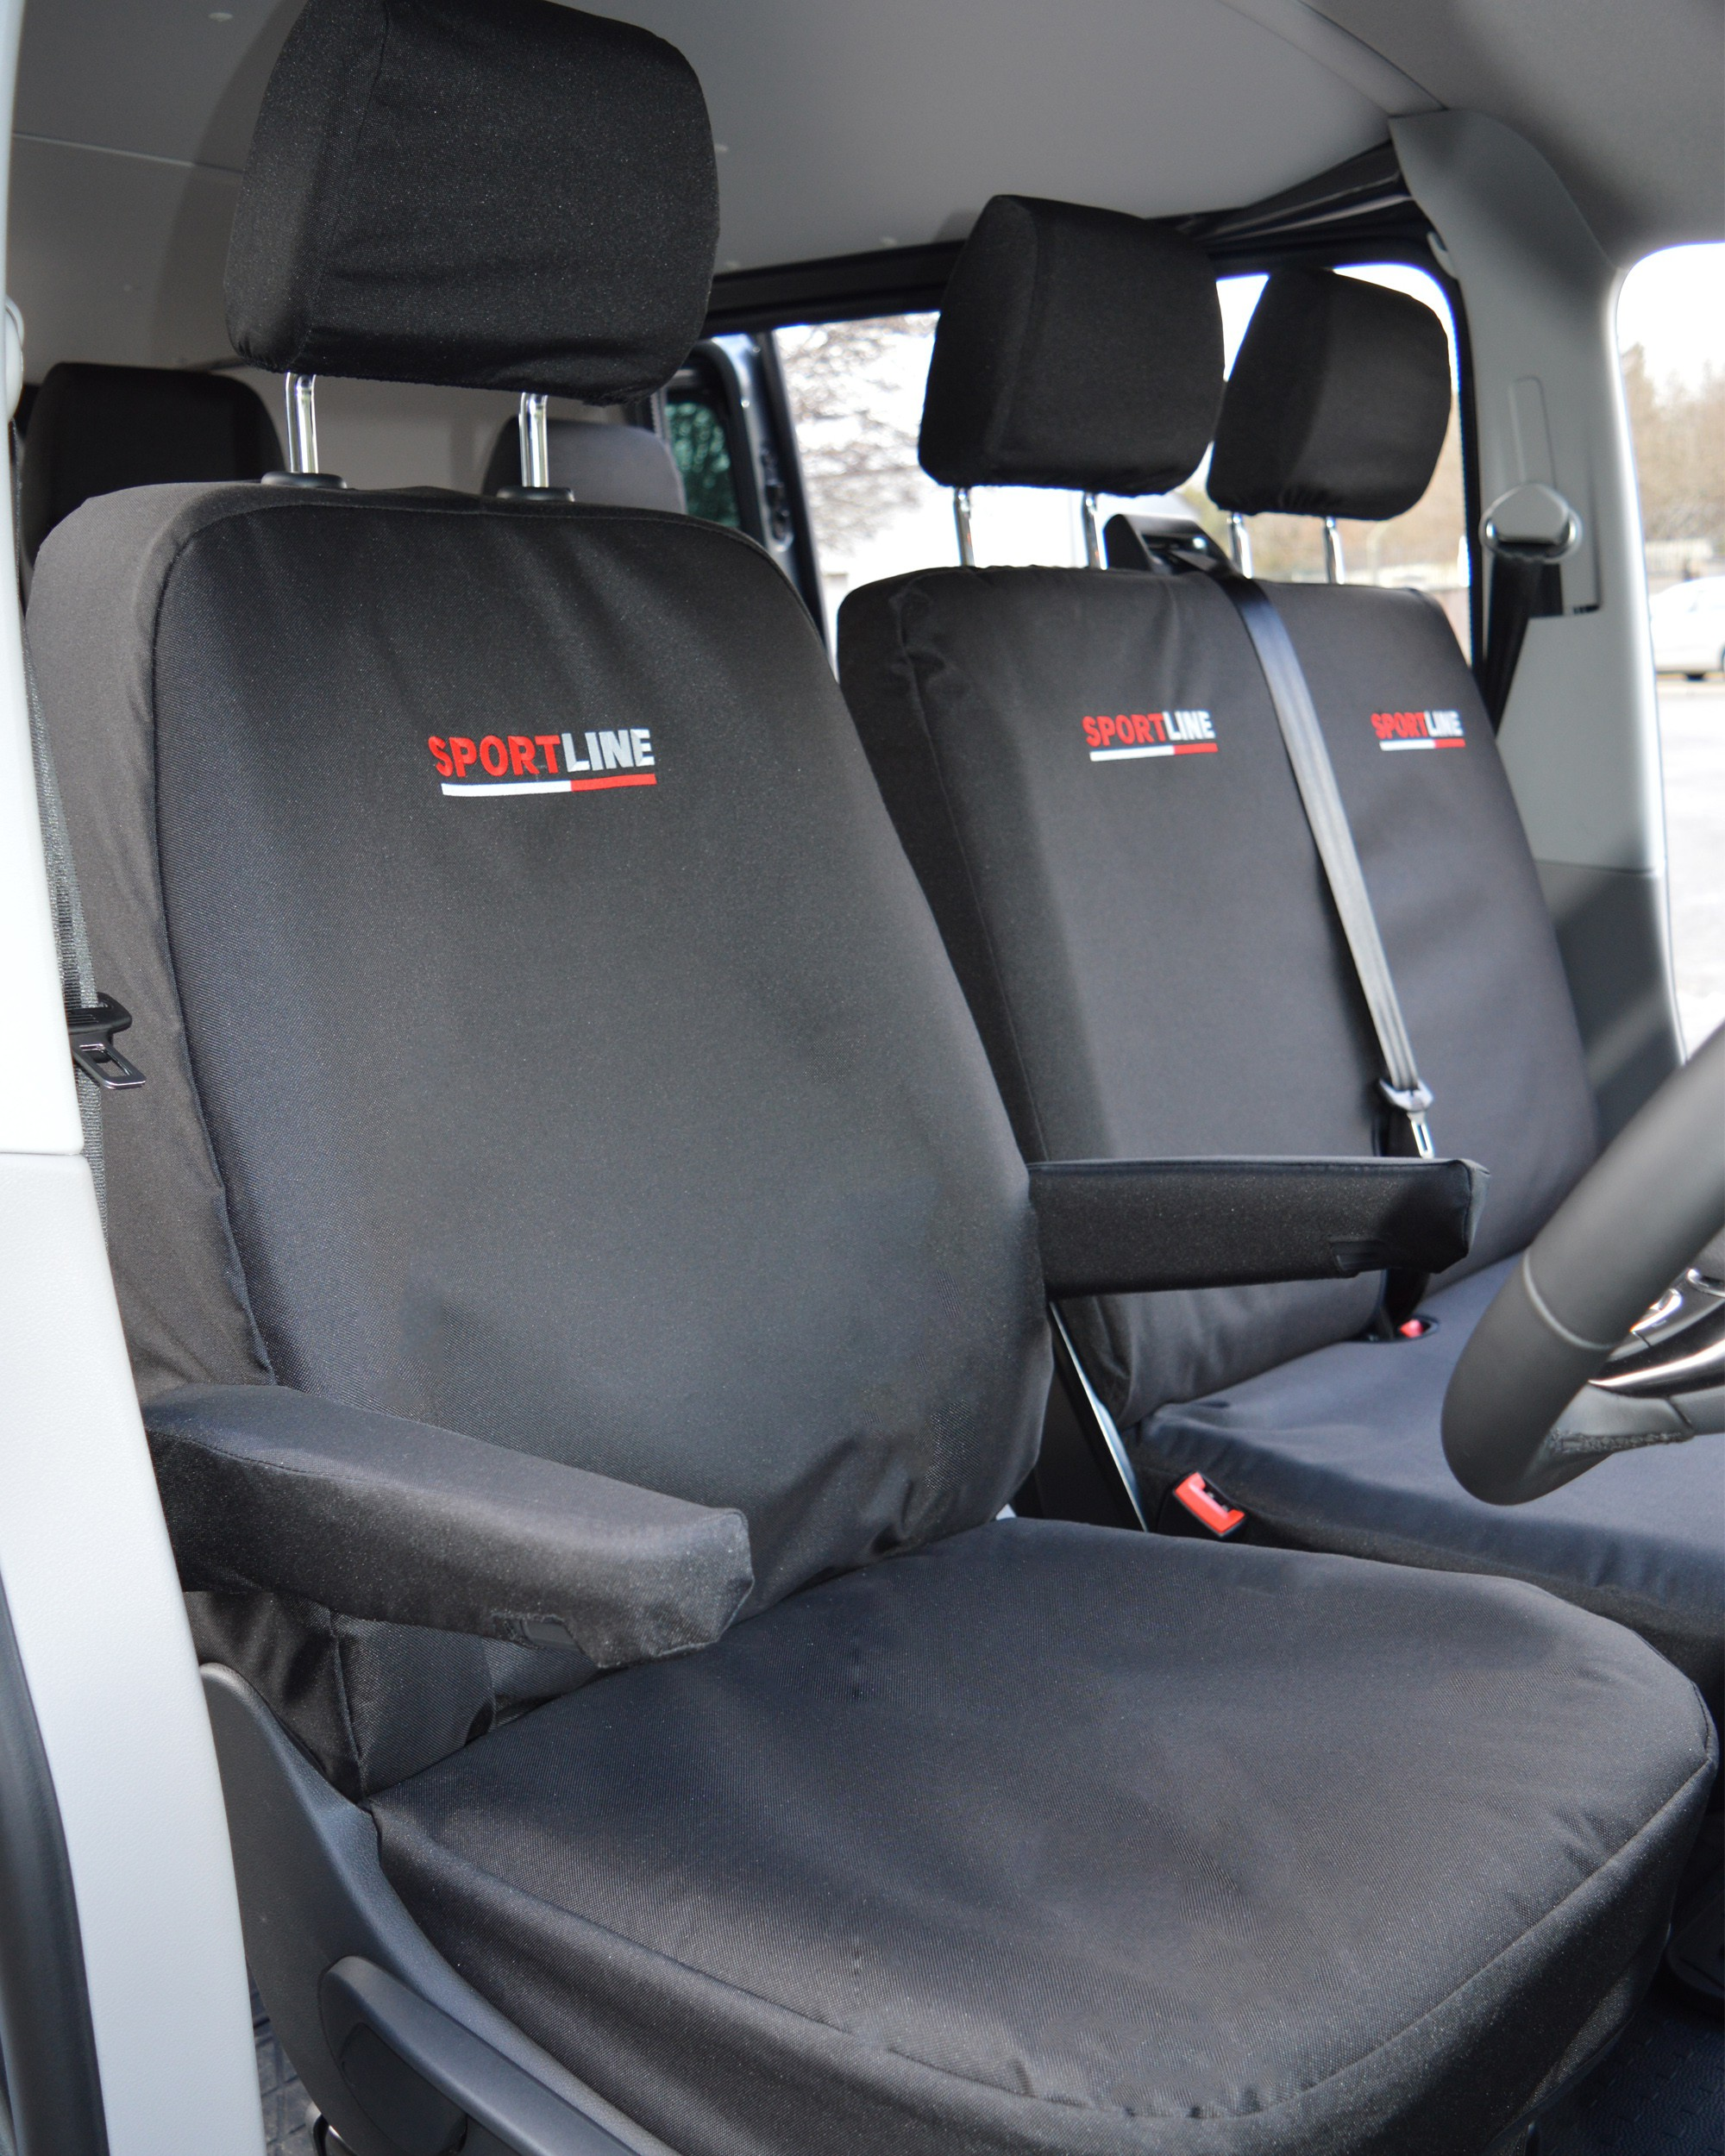 VW Transporter T5 sportline extra heavy duty seat covers - driver seat